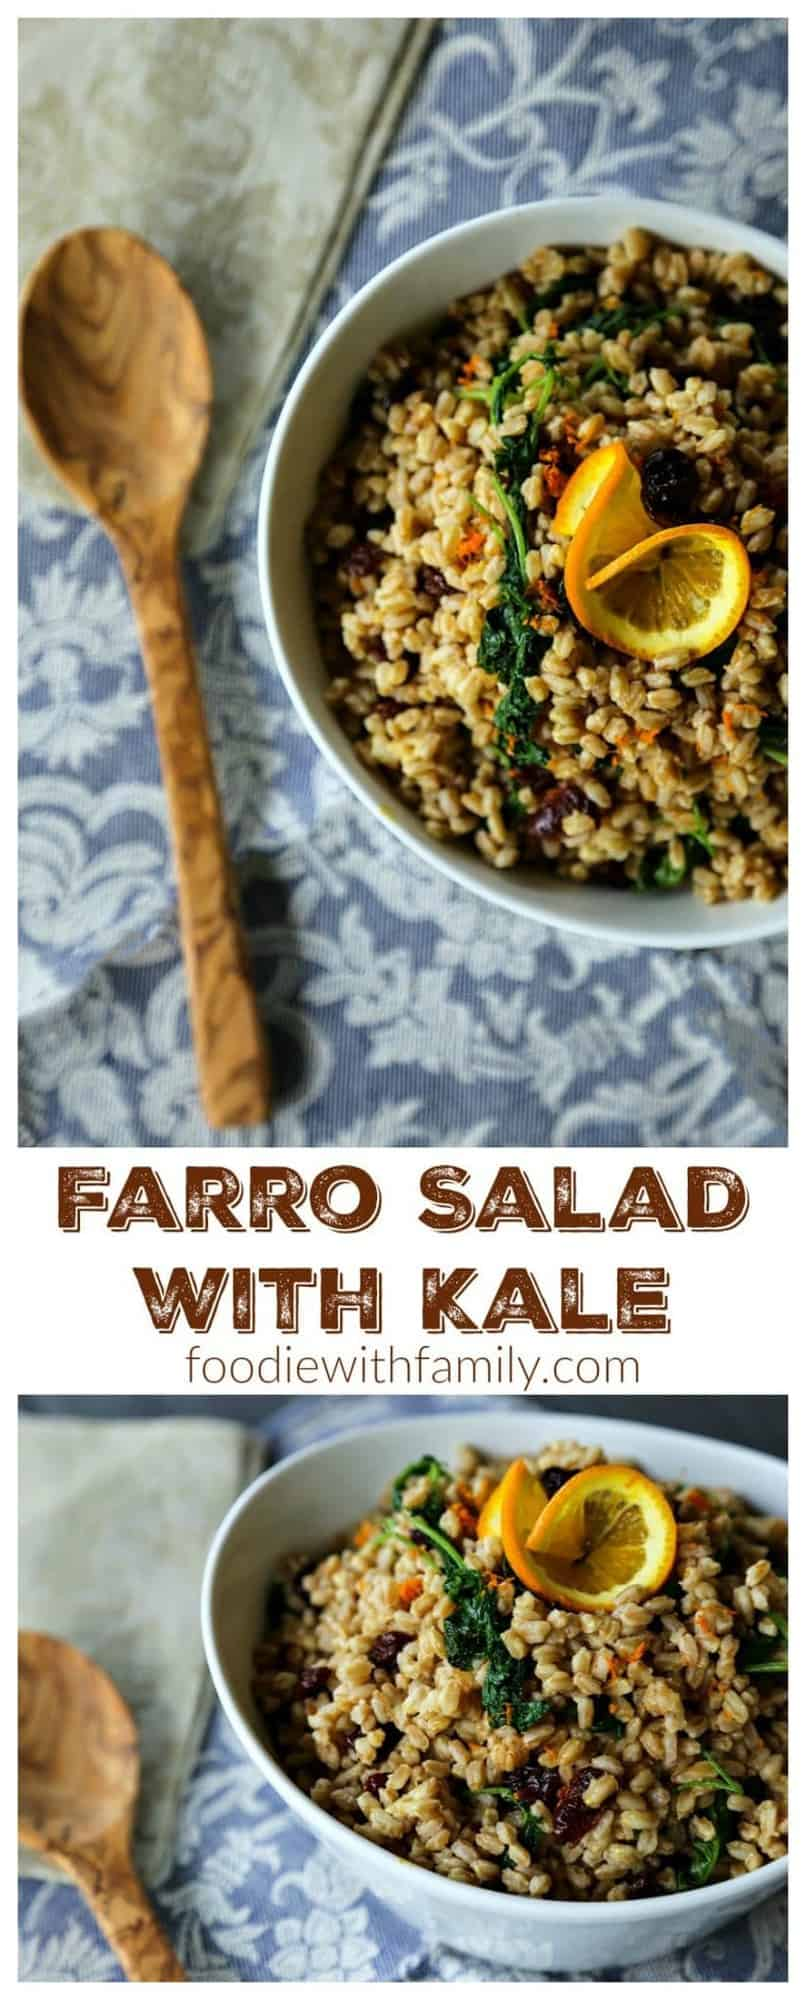 Garlicky Farro Salad with Kale, dried cherries, and orange from foodiewithfamily.com